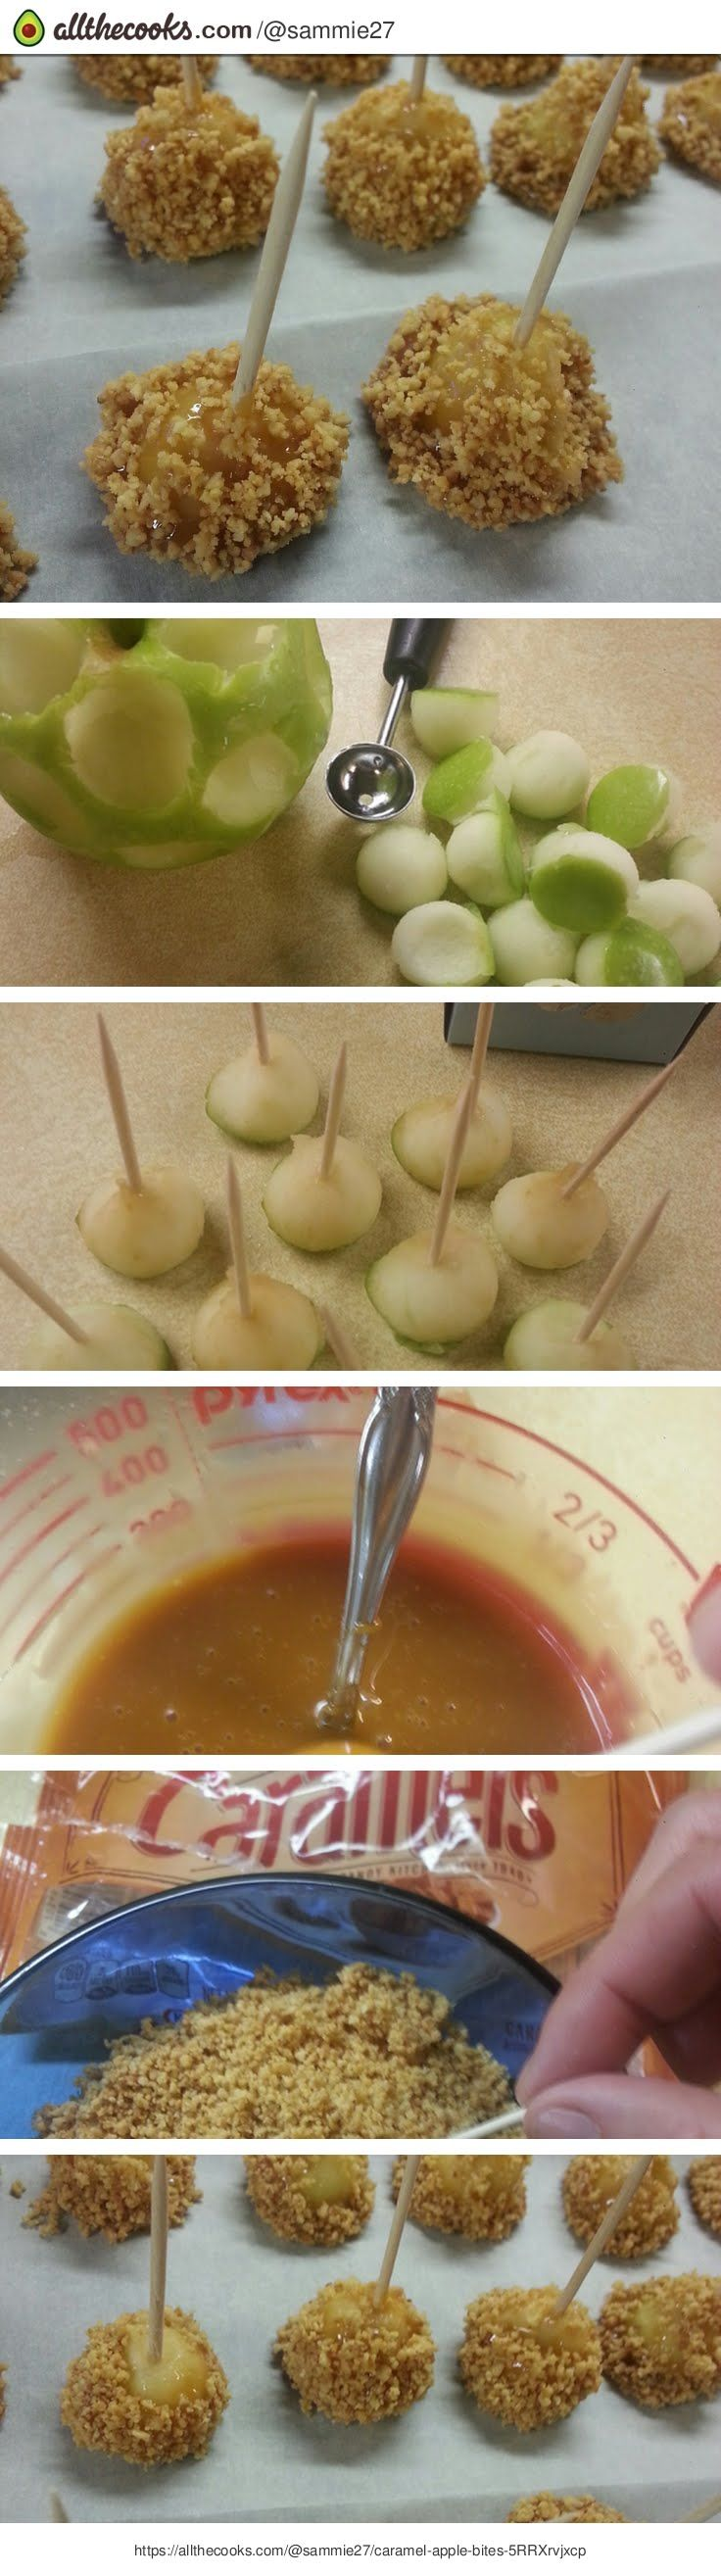 Caramel Apple Bites - would be a great idea for a party or something!  Gonna try them for my 16th birthday party!